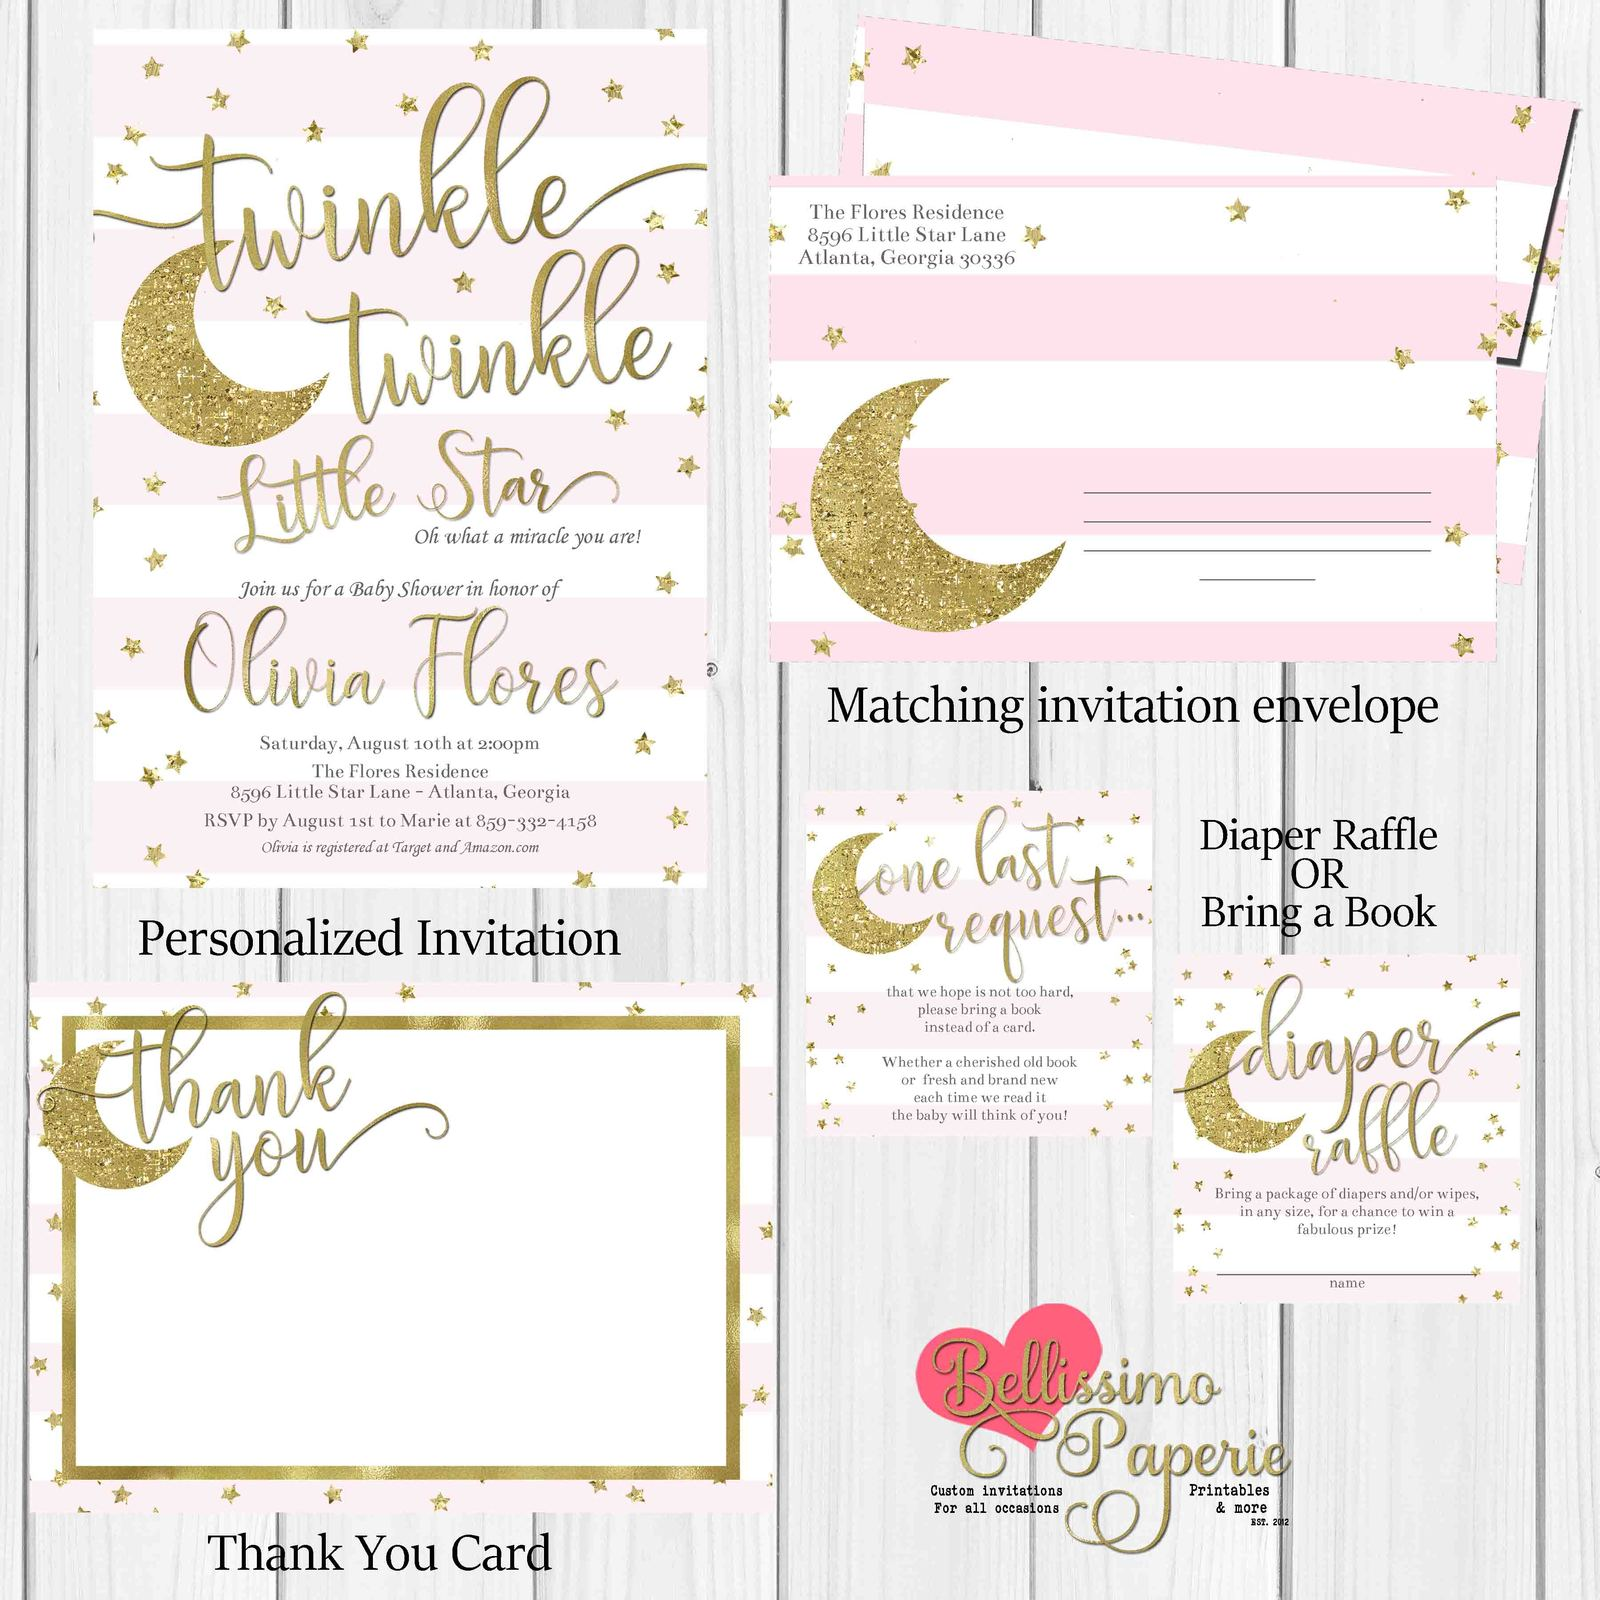 twinkle twinkle little star Baby Shower and similar items